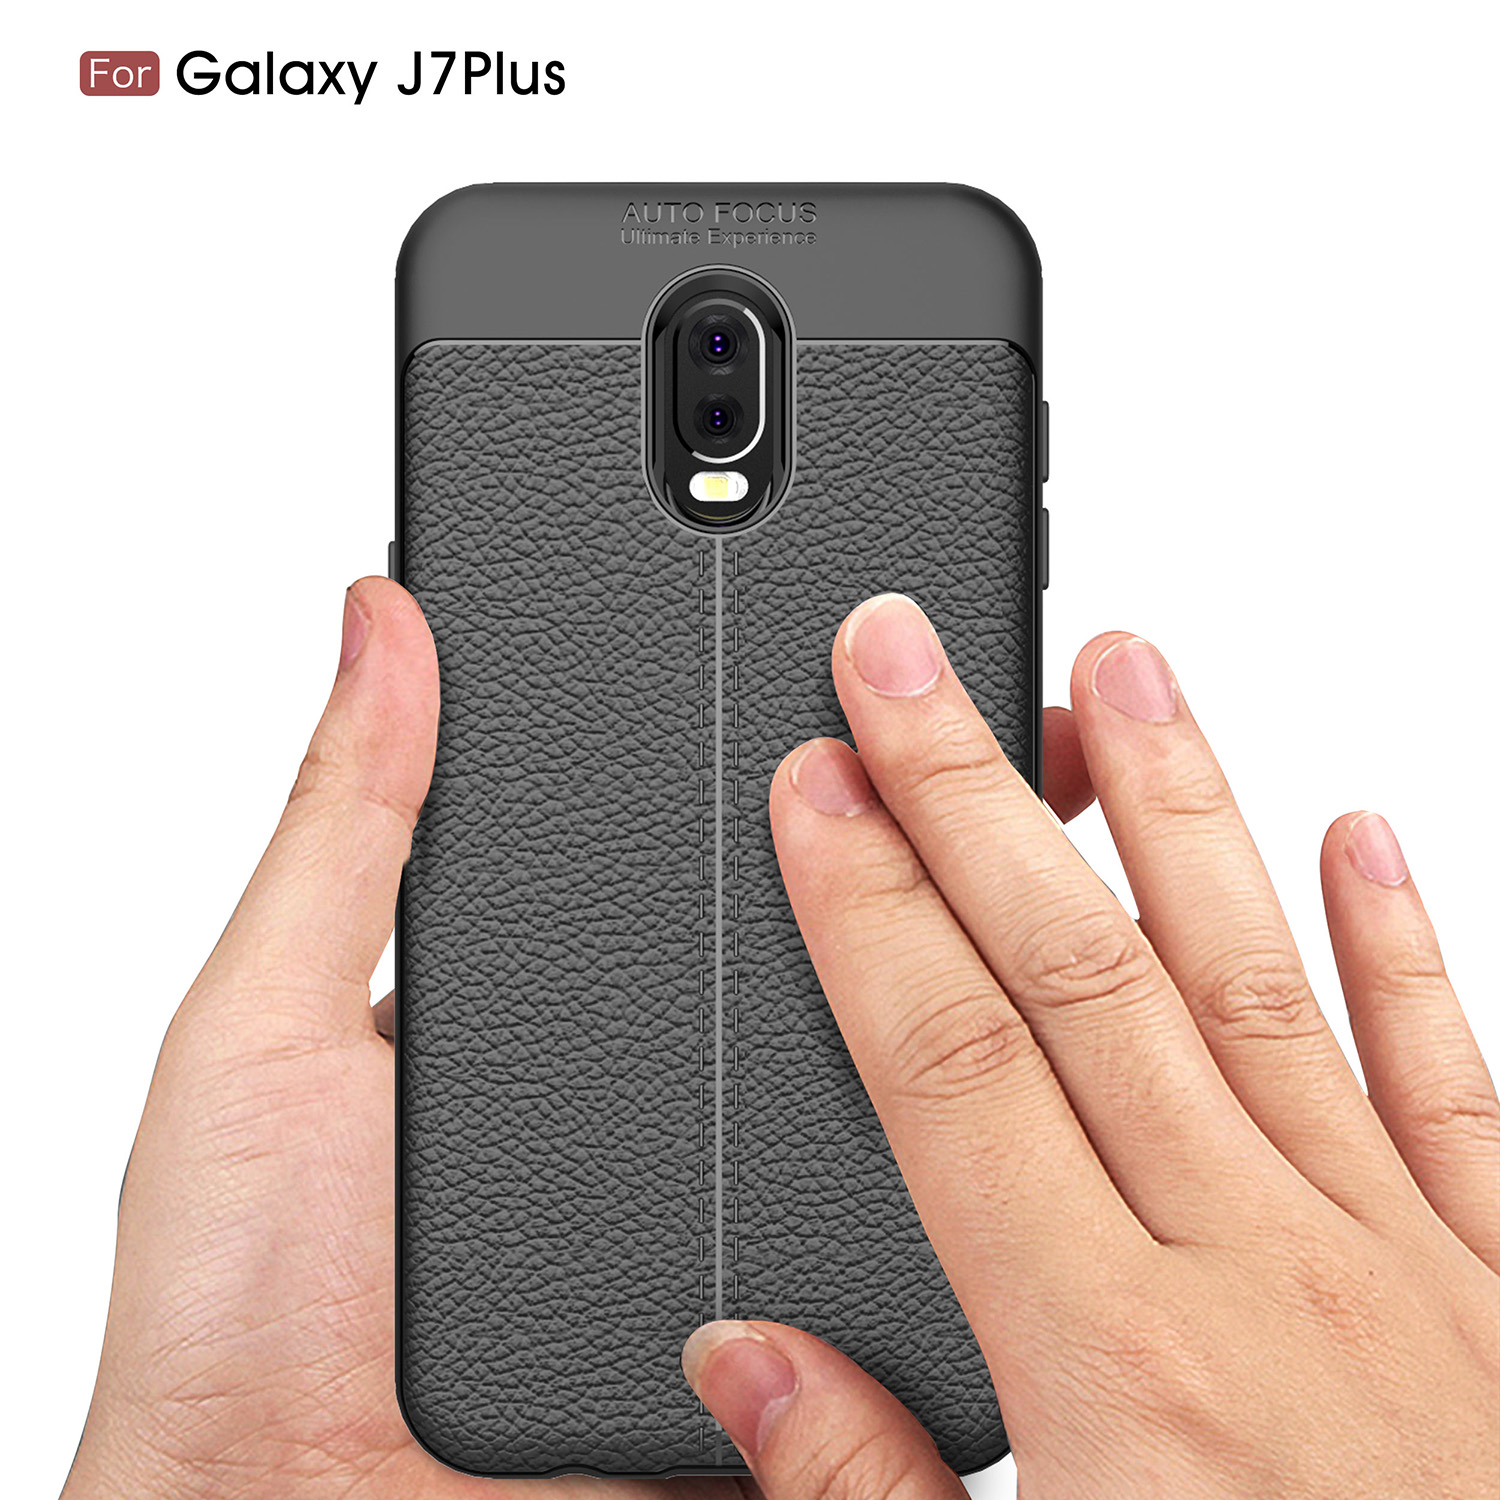 Aliexpress Buy Fitted Case for Samsung Galaxy J7 Plus C7 2017 C8 C710 SM C7108 SM C7100 SM C710F DS Silicone Mobile Case Soft TPU Phone Cover from